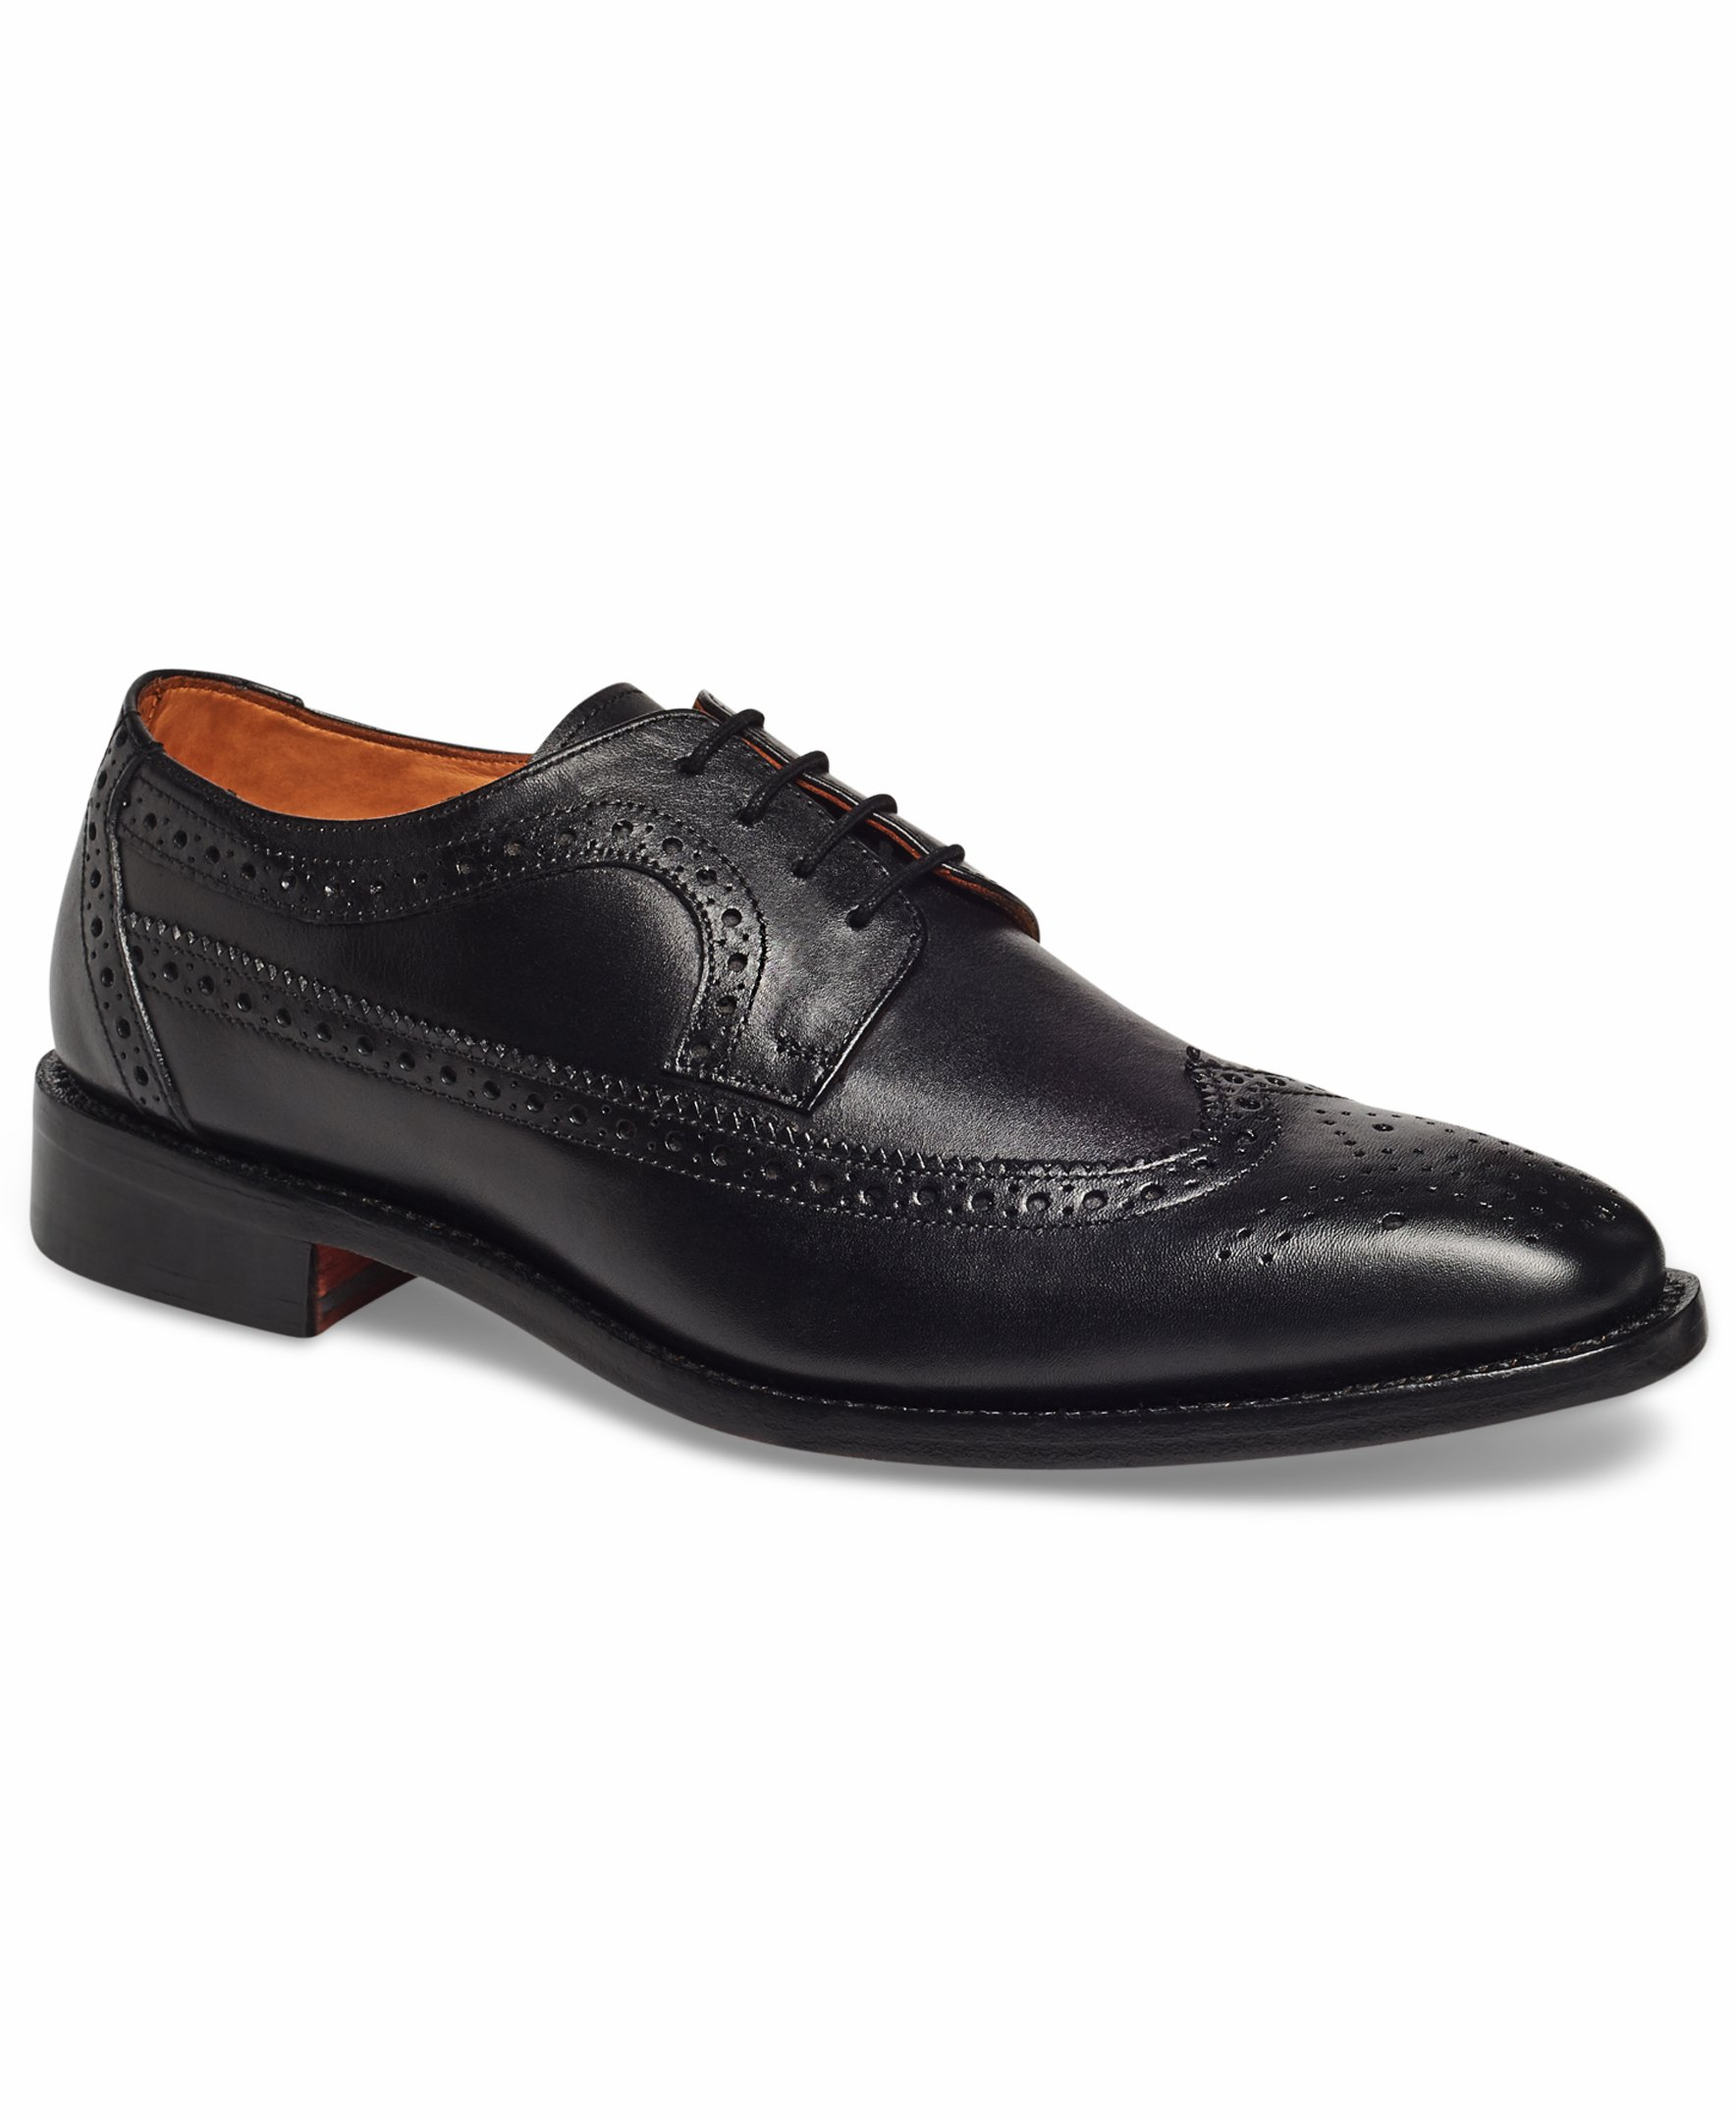 Anthony Veer Mens Regan Oxford Full Brogue Leather Shoes in Goodyear Welted Construction (8.5 D, Black) by Anthony Veer (Image #1)